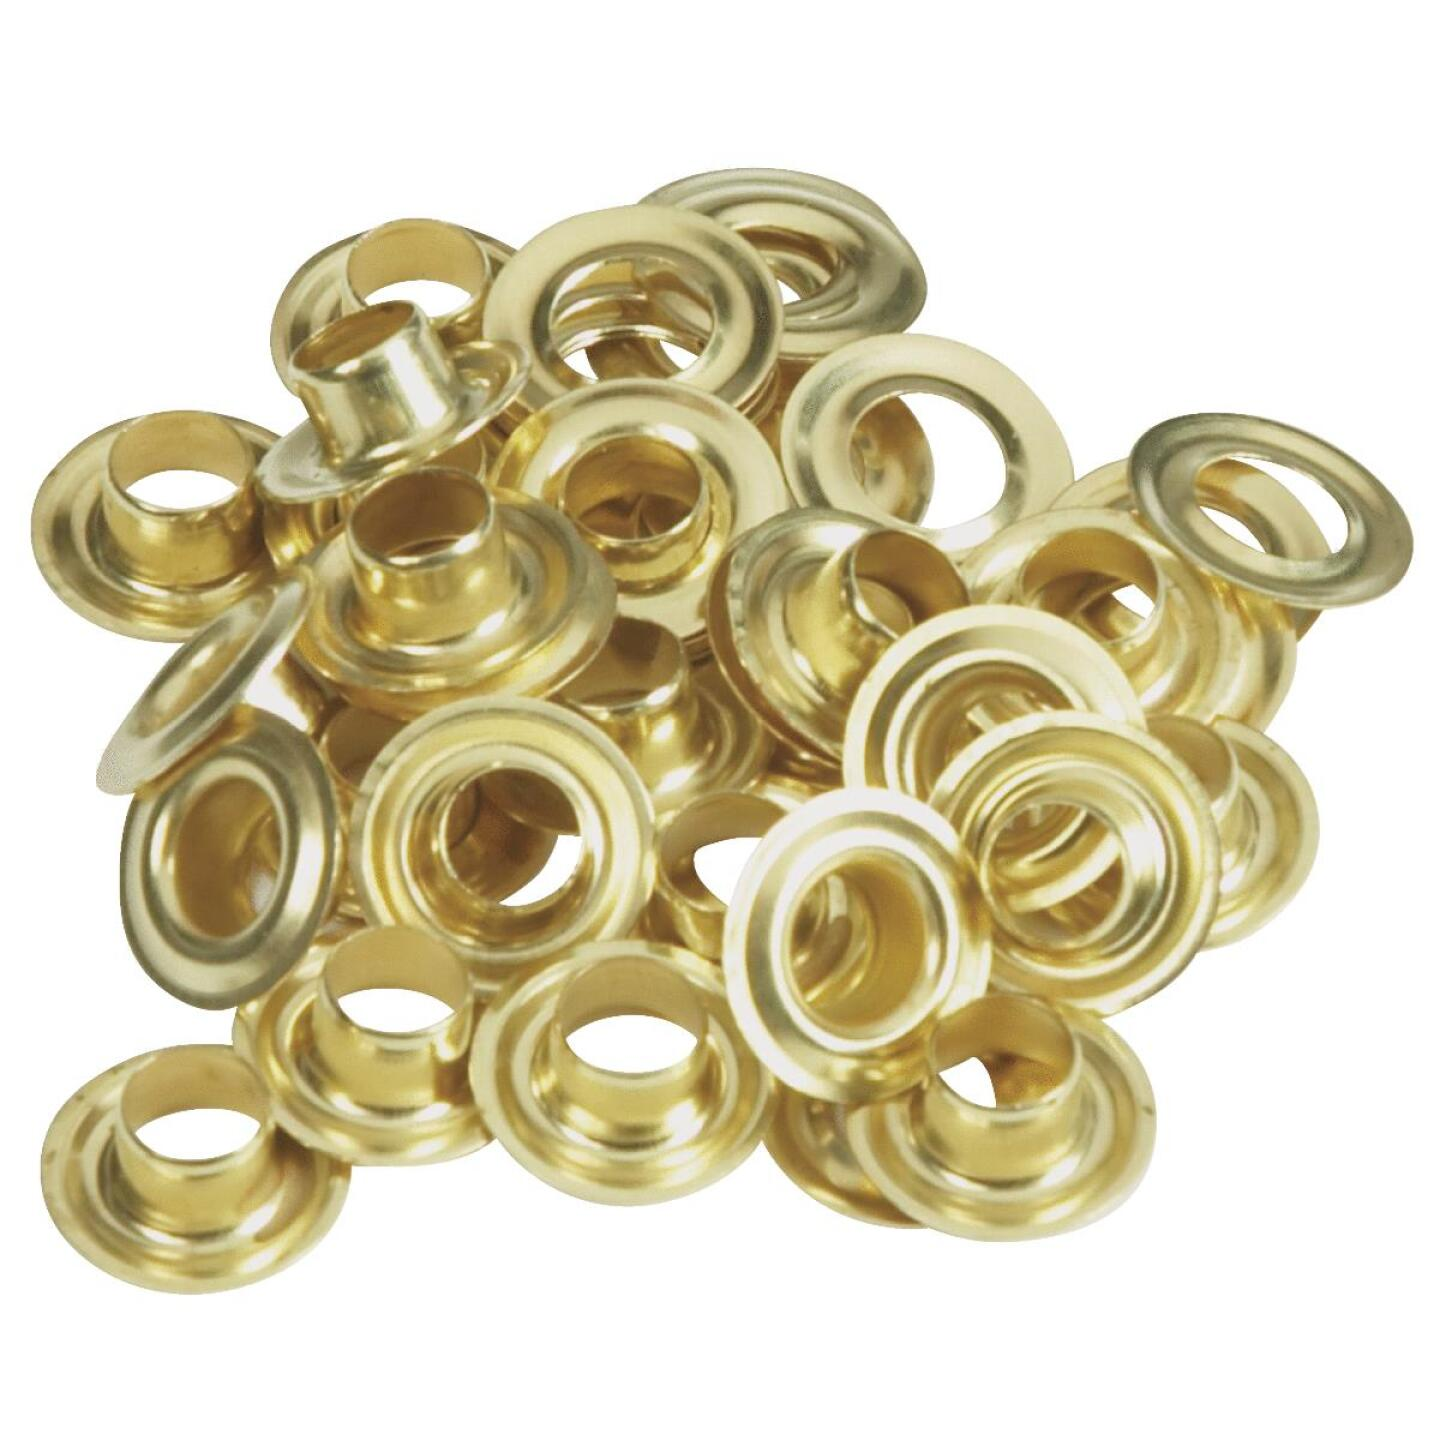 Lord & Hodge 1/4 In. Brass Grommet Refills (24 Ct.) Image 1